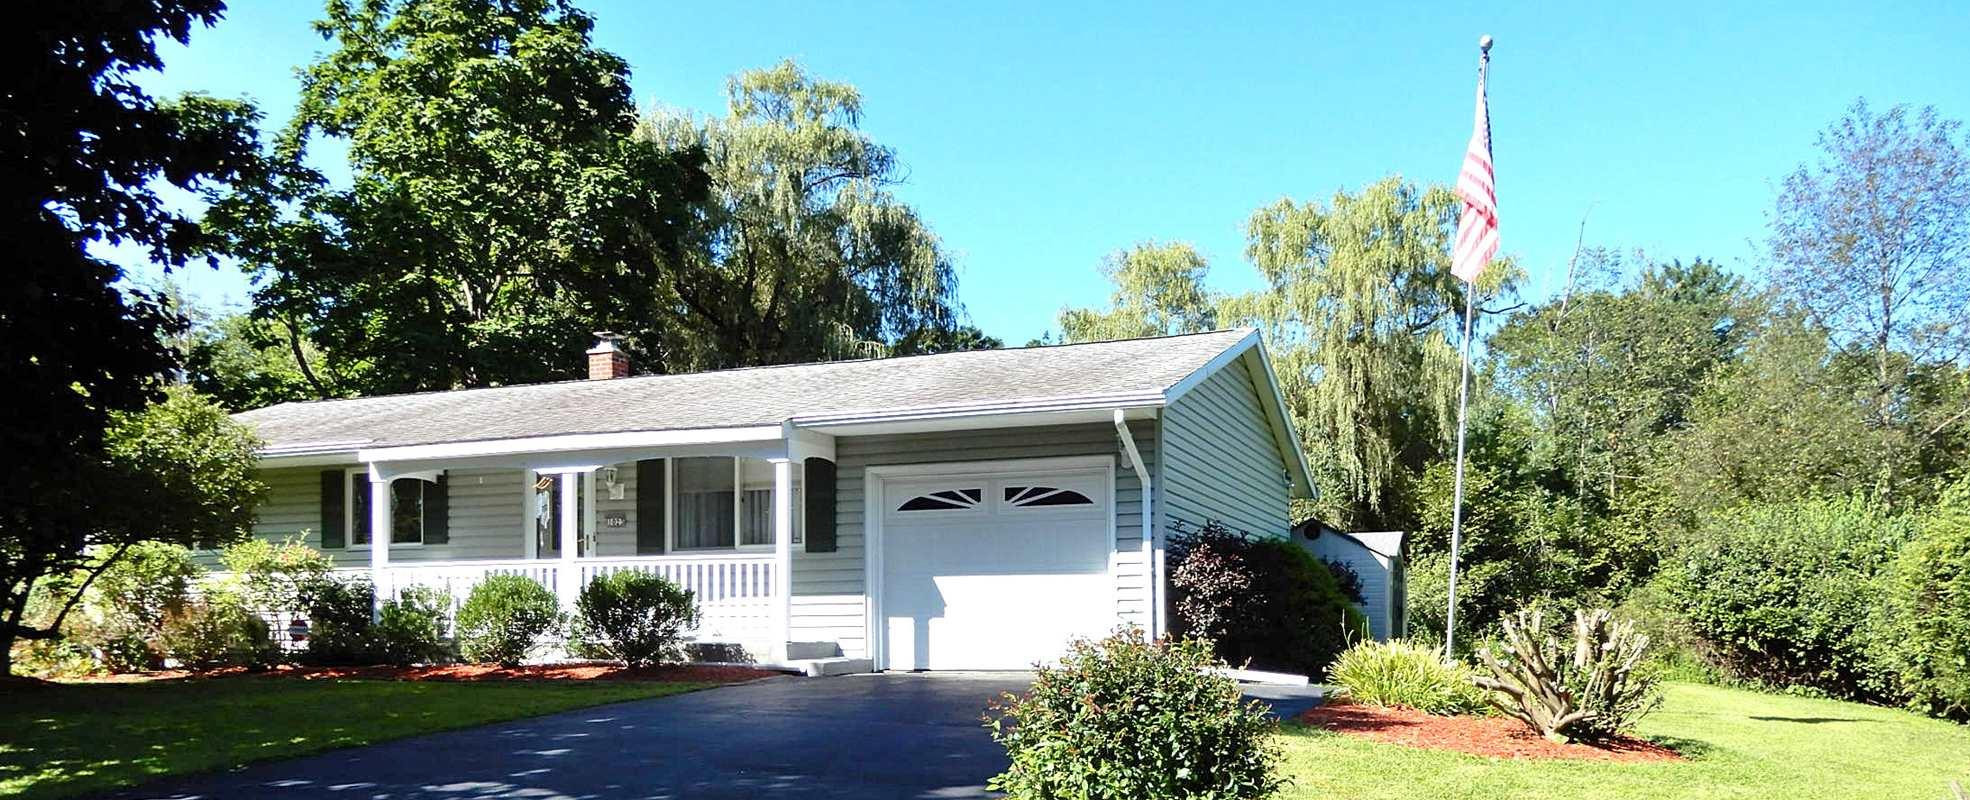 Featured:  1023 Clover Lawn Rd., Brunswick, NY 12180